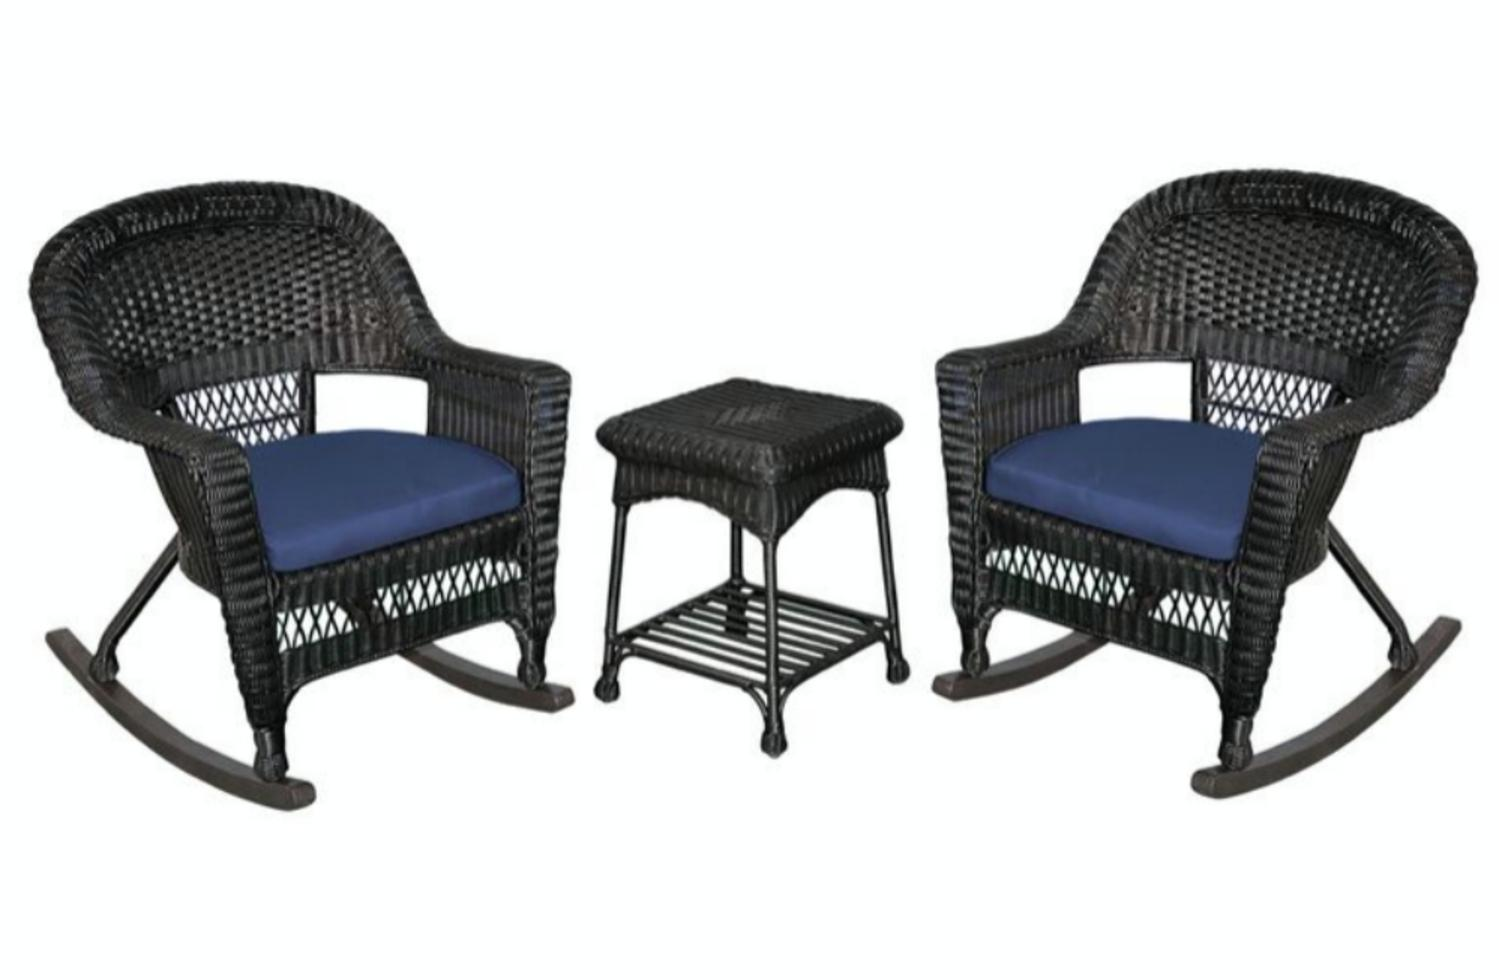 3 Piece Black Resin Wicker Patio Chairs And End Table Furniture Set Orange Cushions